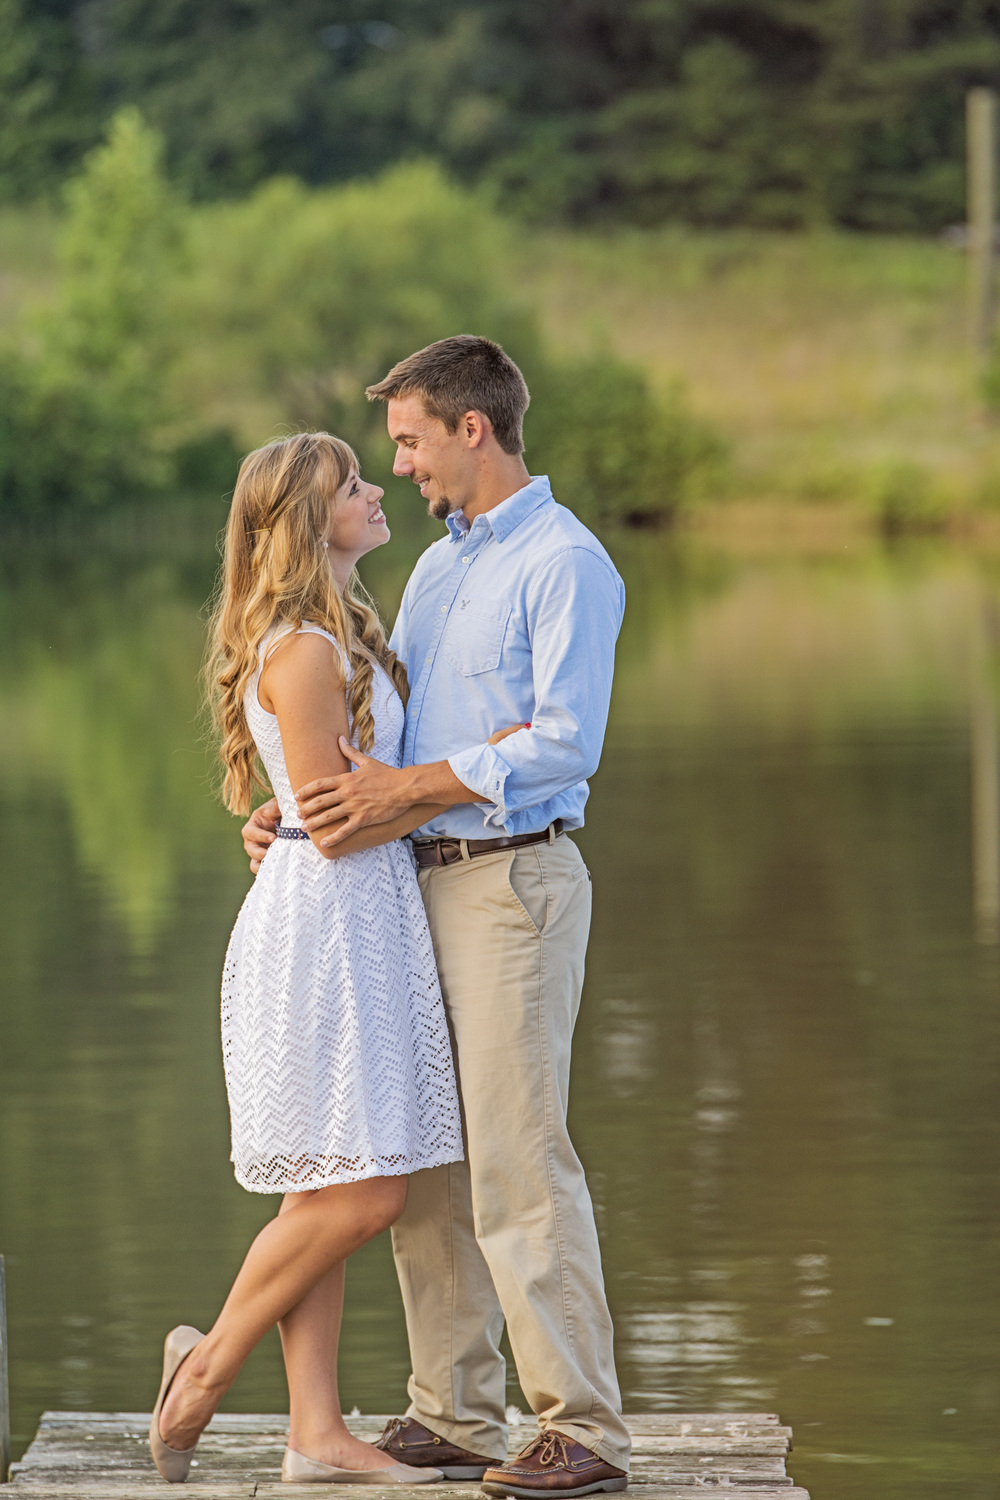 garden_dock_quilt_fun_engagement_session_lynchburg_va023.jpg